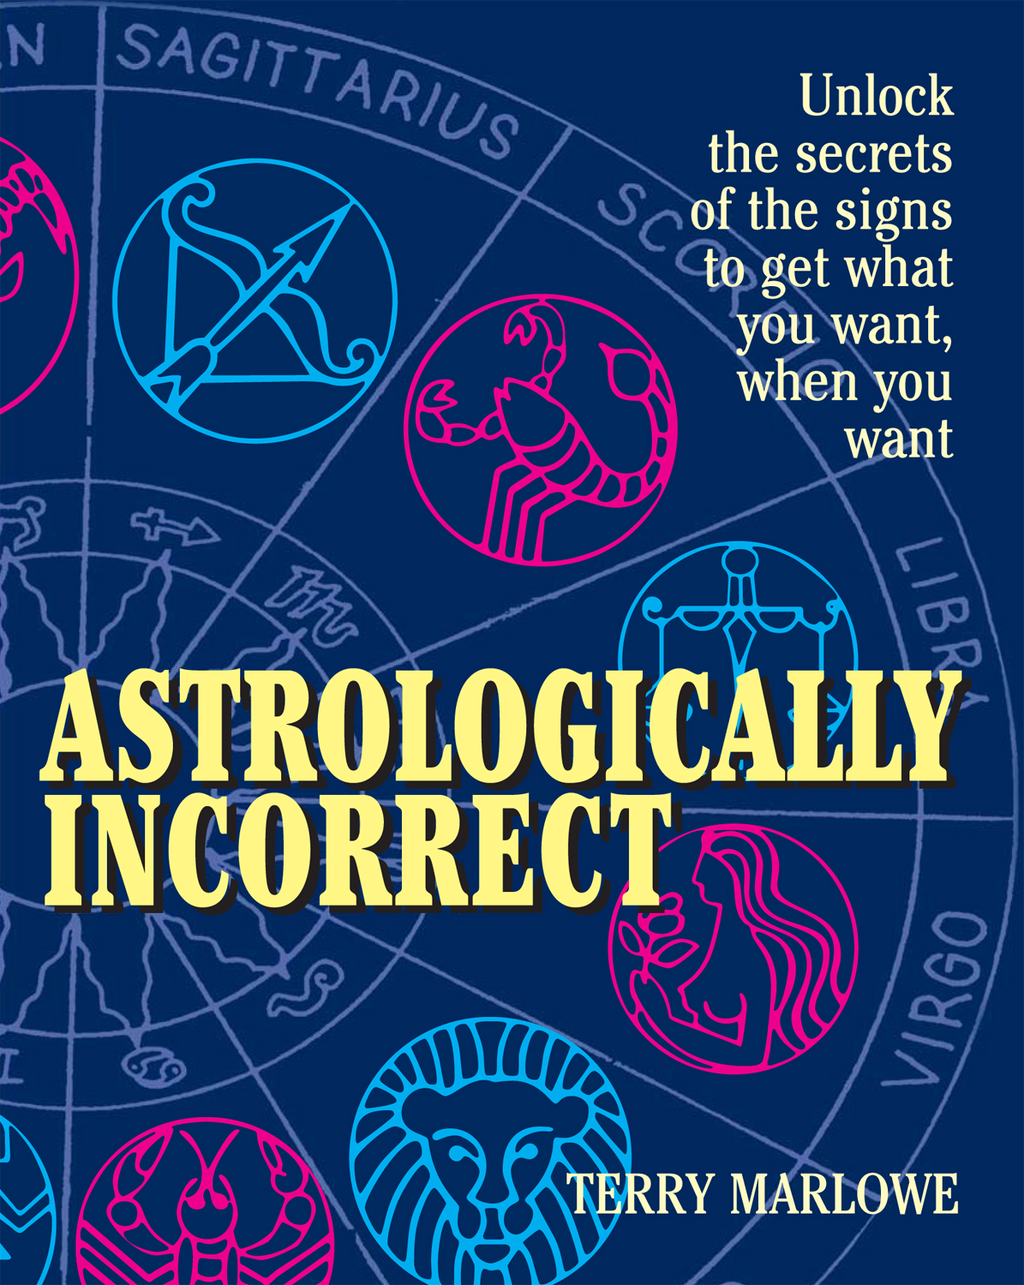 Astrologically Incorrect: Unlock the Secrets of the Signs to Get What You Want When You Want!